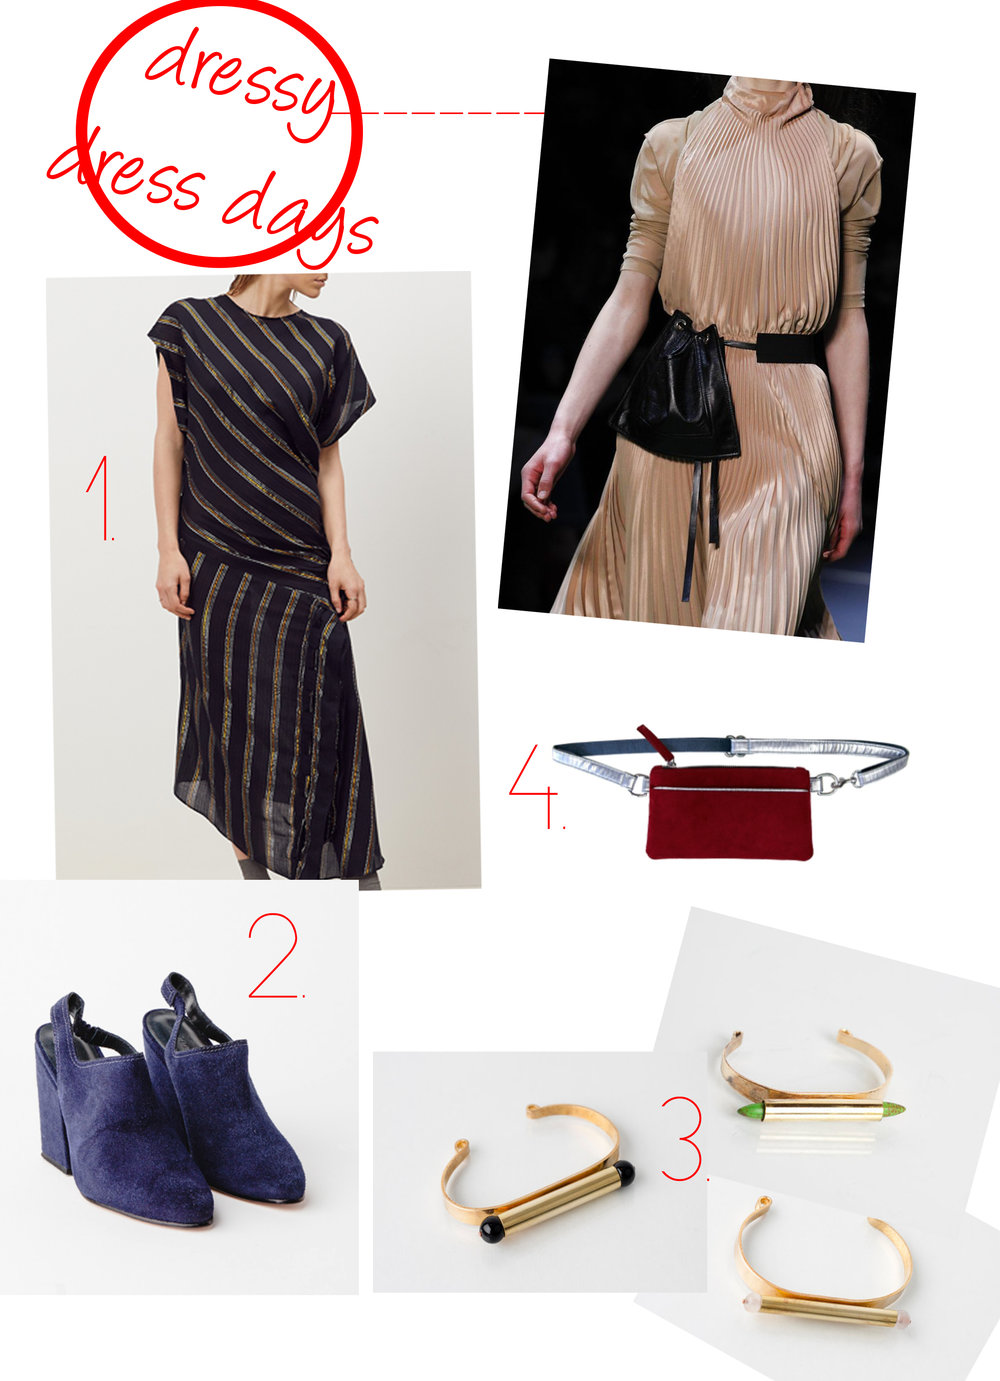 1. Rachel Comey Black Regent Dress 2. Rachel Comey Kai Slingback Heels 3. Cities in Dust Black Onyx Ball Cuff  Cities in Dust Rose Quartz Ball Cuff  Cities in Dust Green Dagger Cuff 4. Hipster for Sister Mulberry Red Pocket Bum Bag